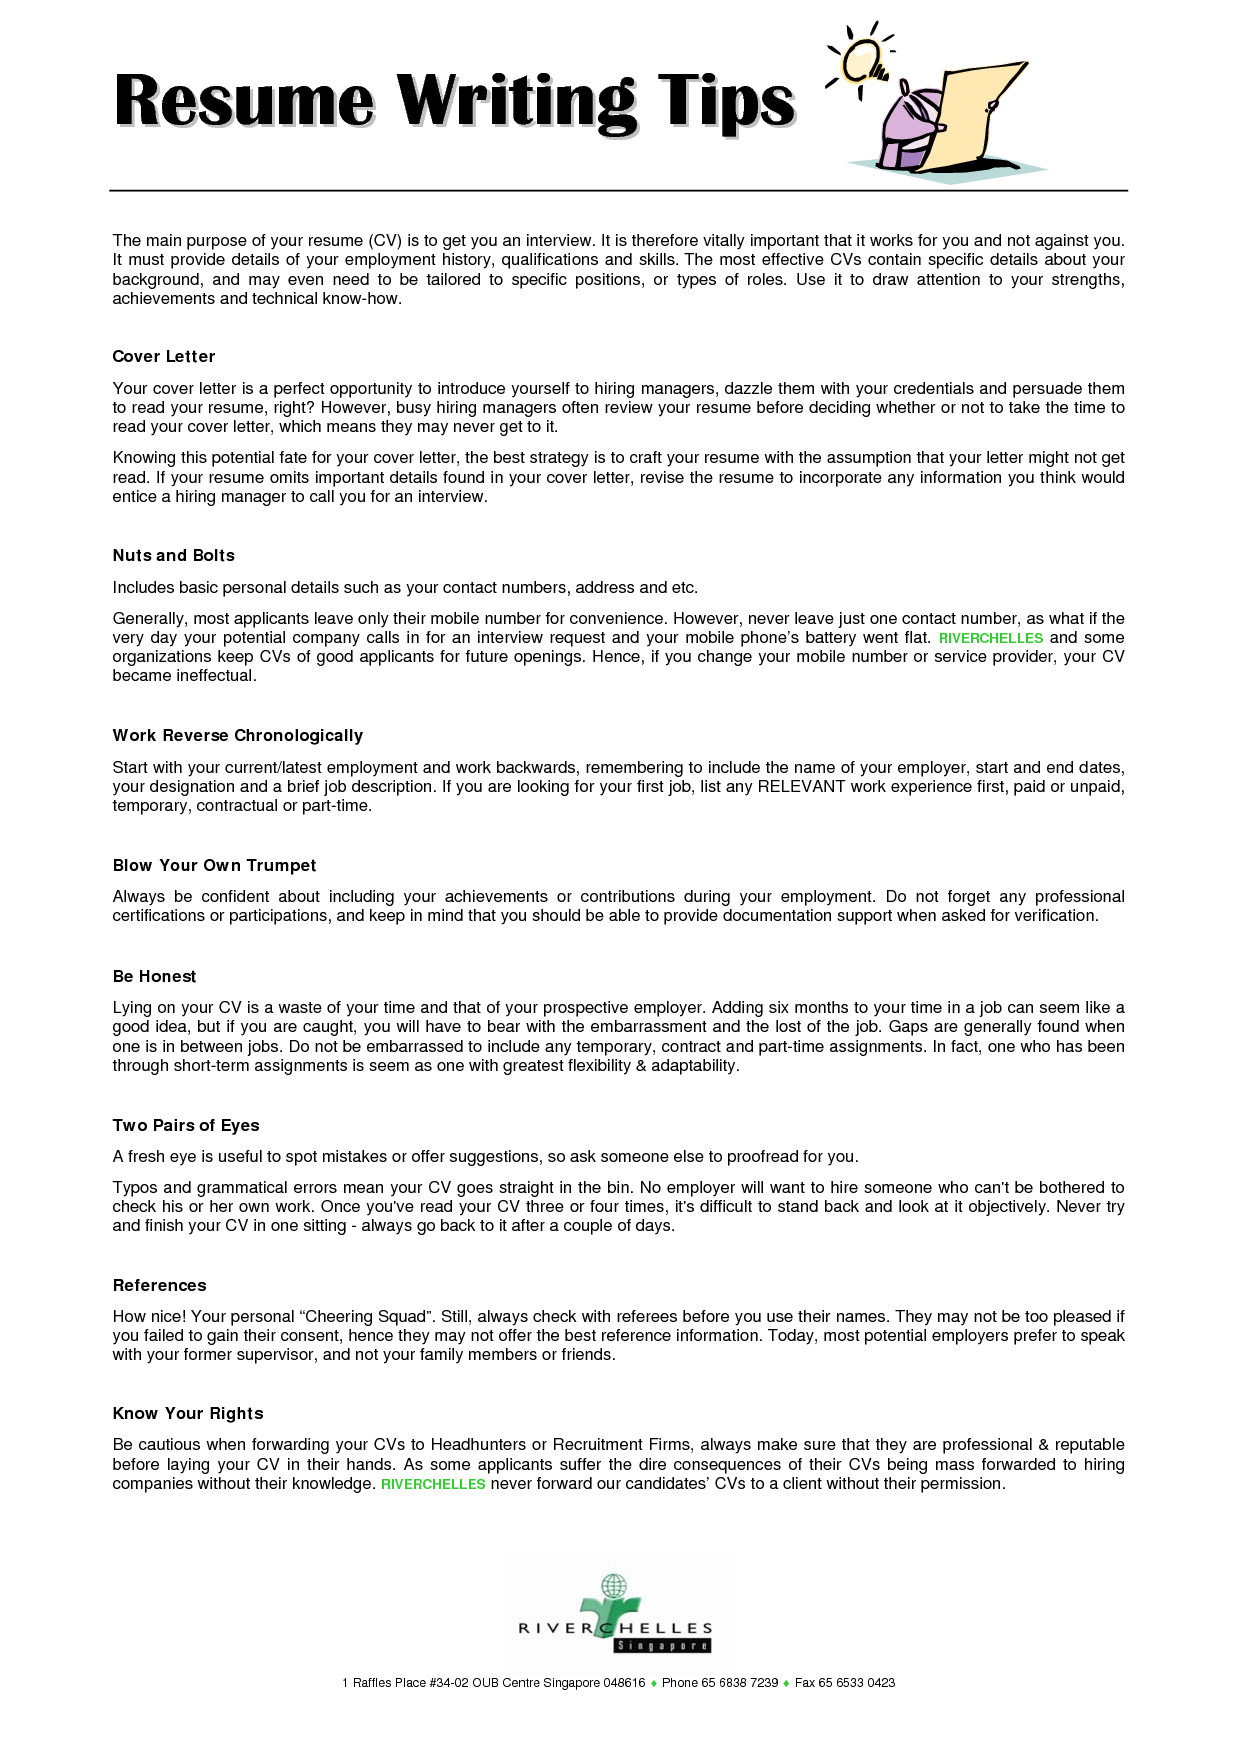 Resume Tips On Resume Writing resume writing tips resumecareer pinterest tips